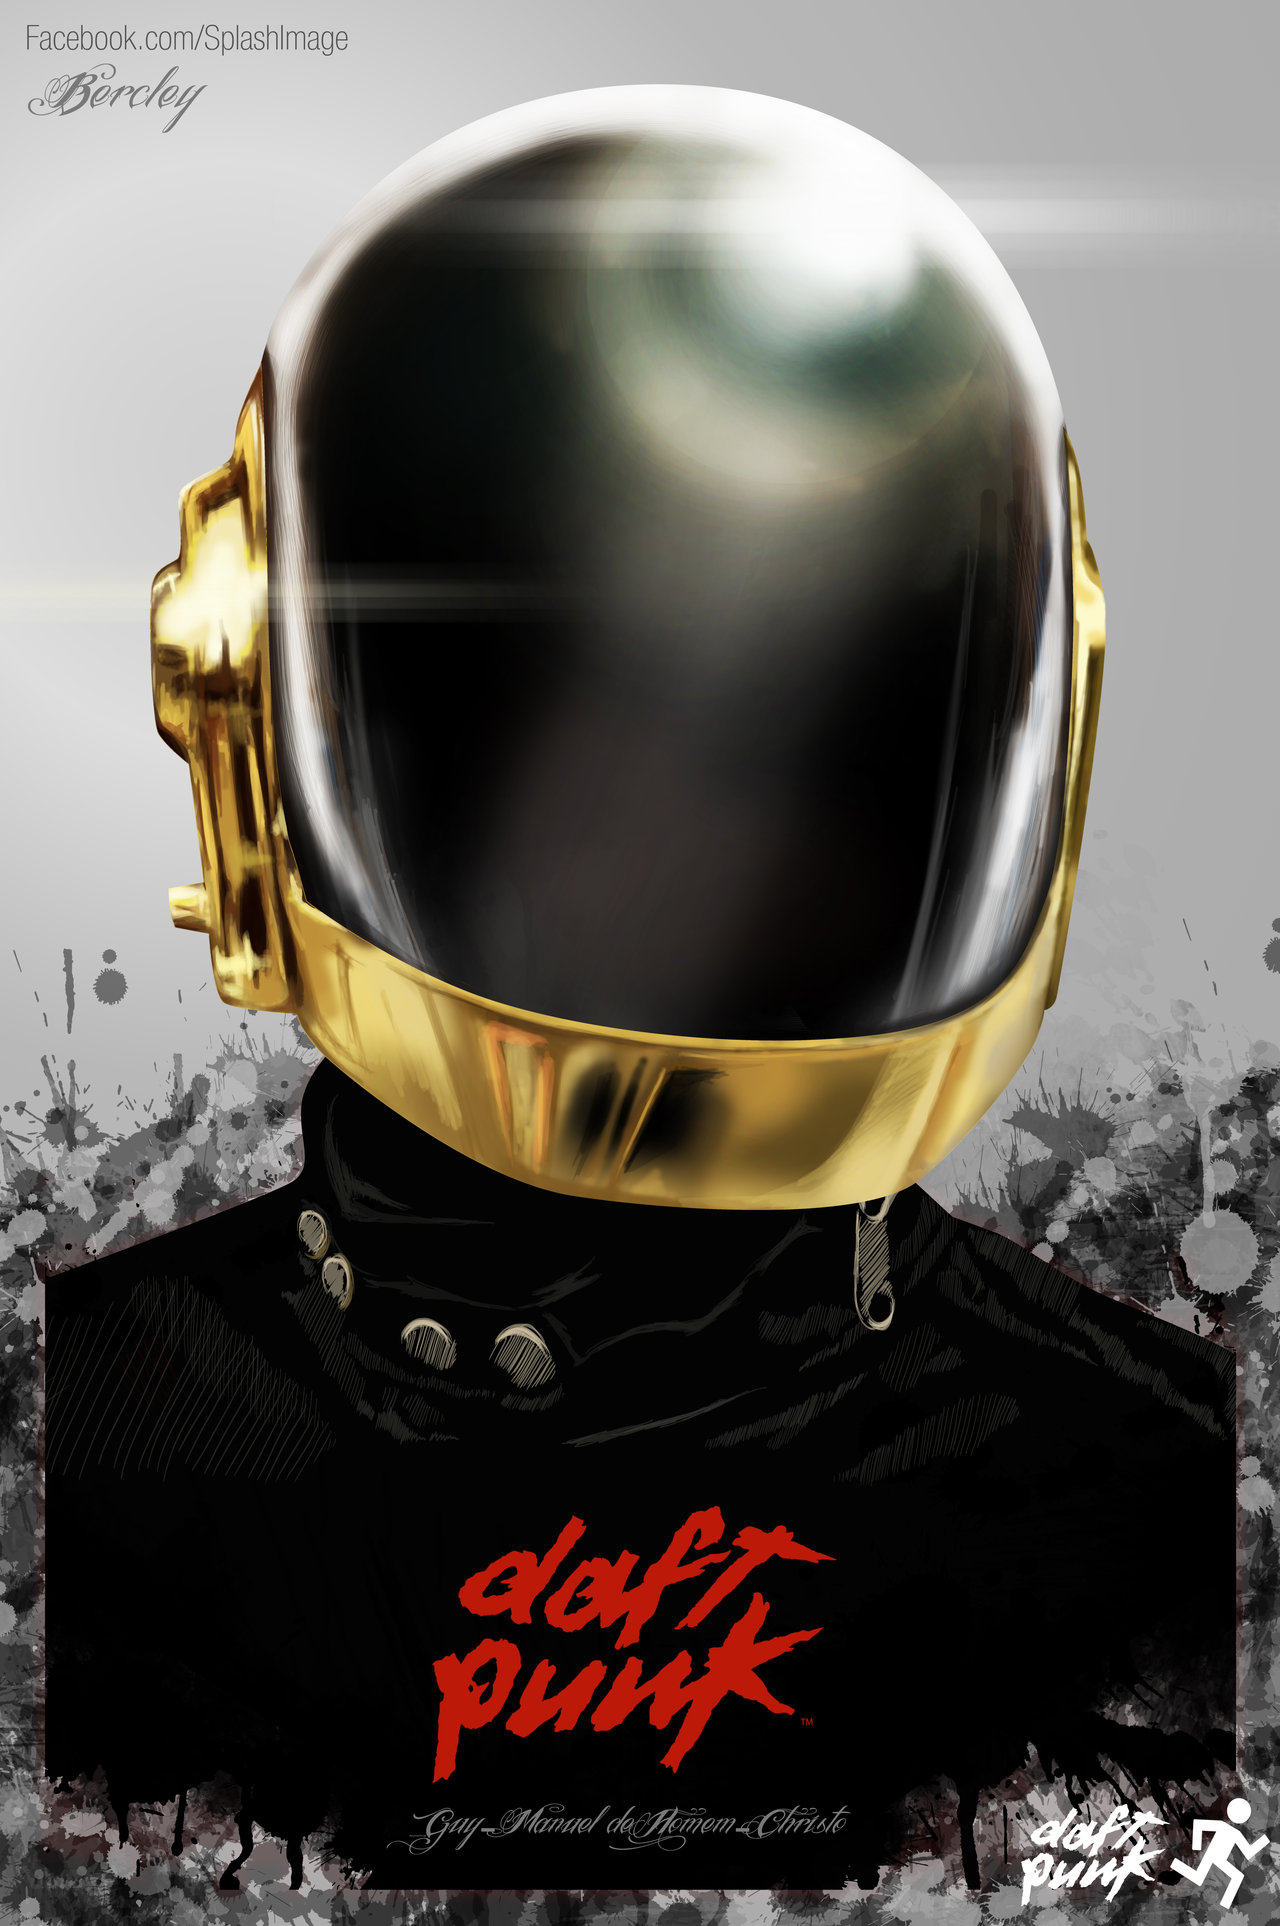 semi daft punk by bercley d4oxb9y1 A Tribute: 40 Awesome Daft Punk Artworks